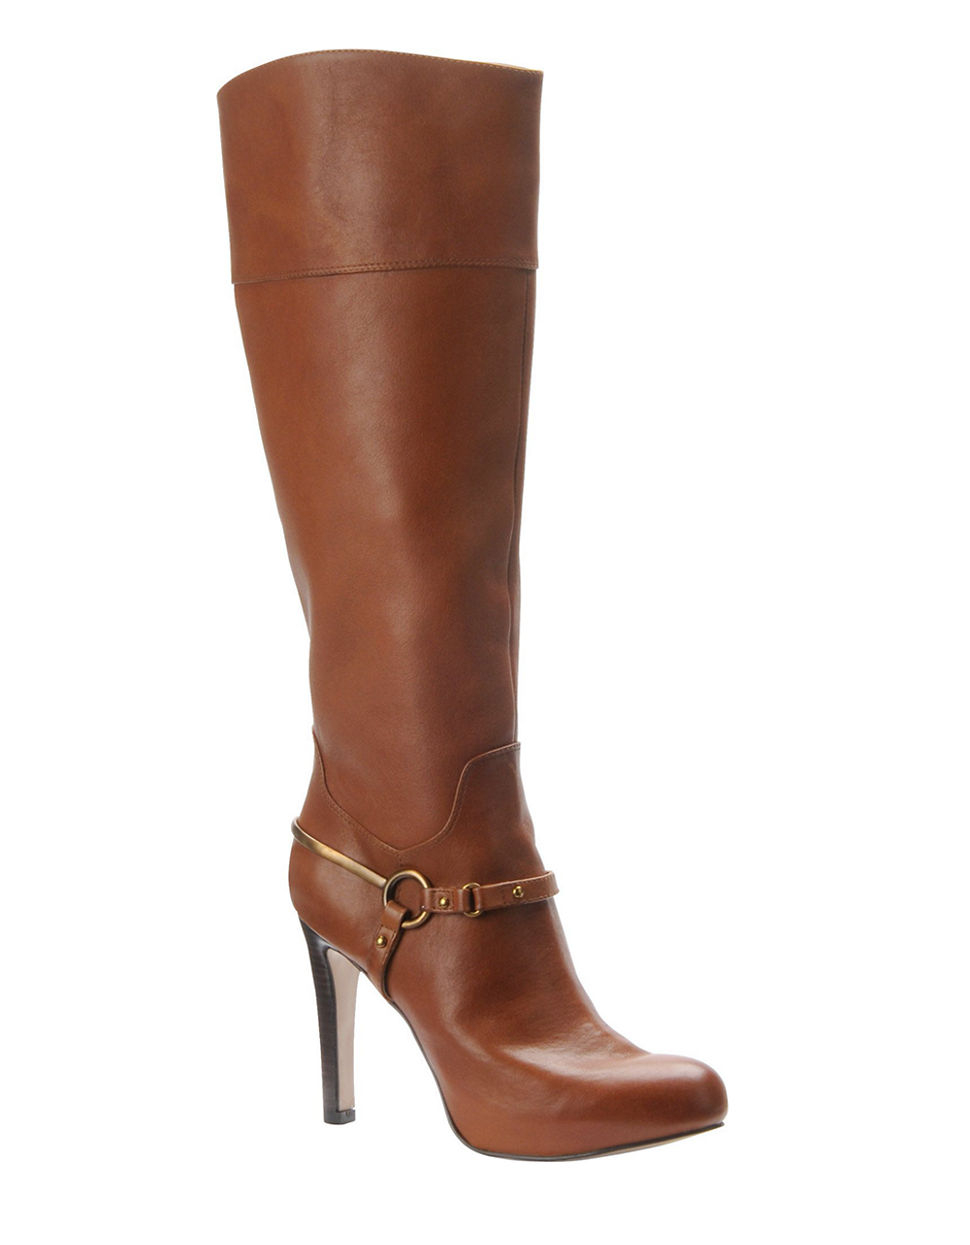 Dkny Boots Shoes